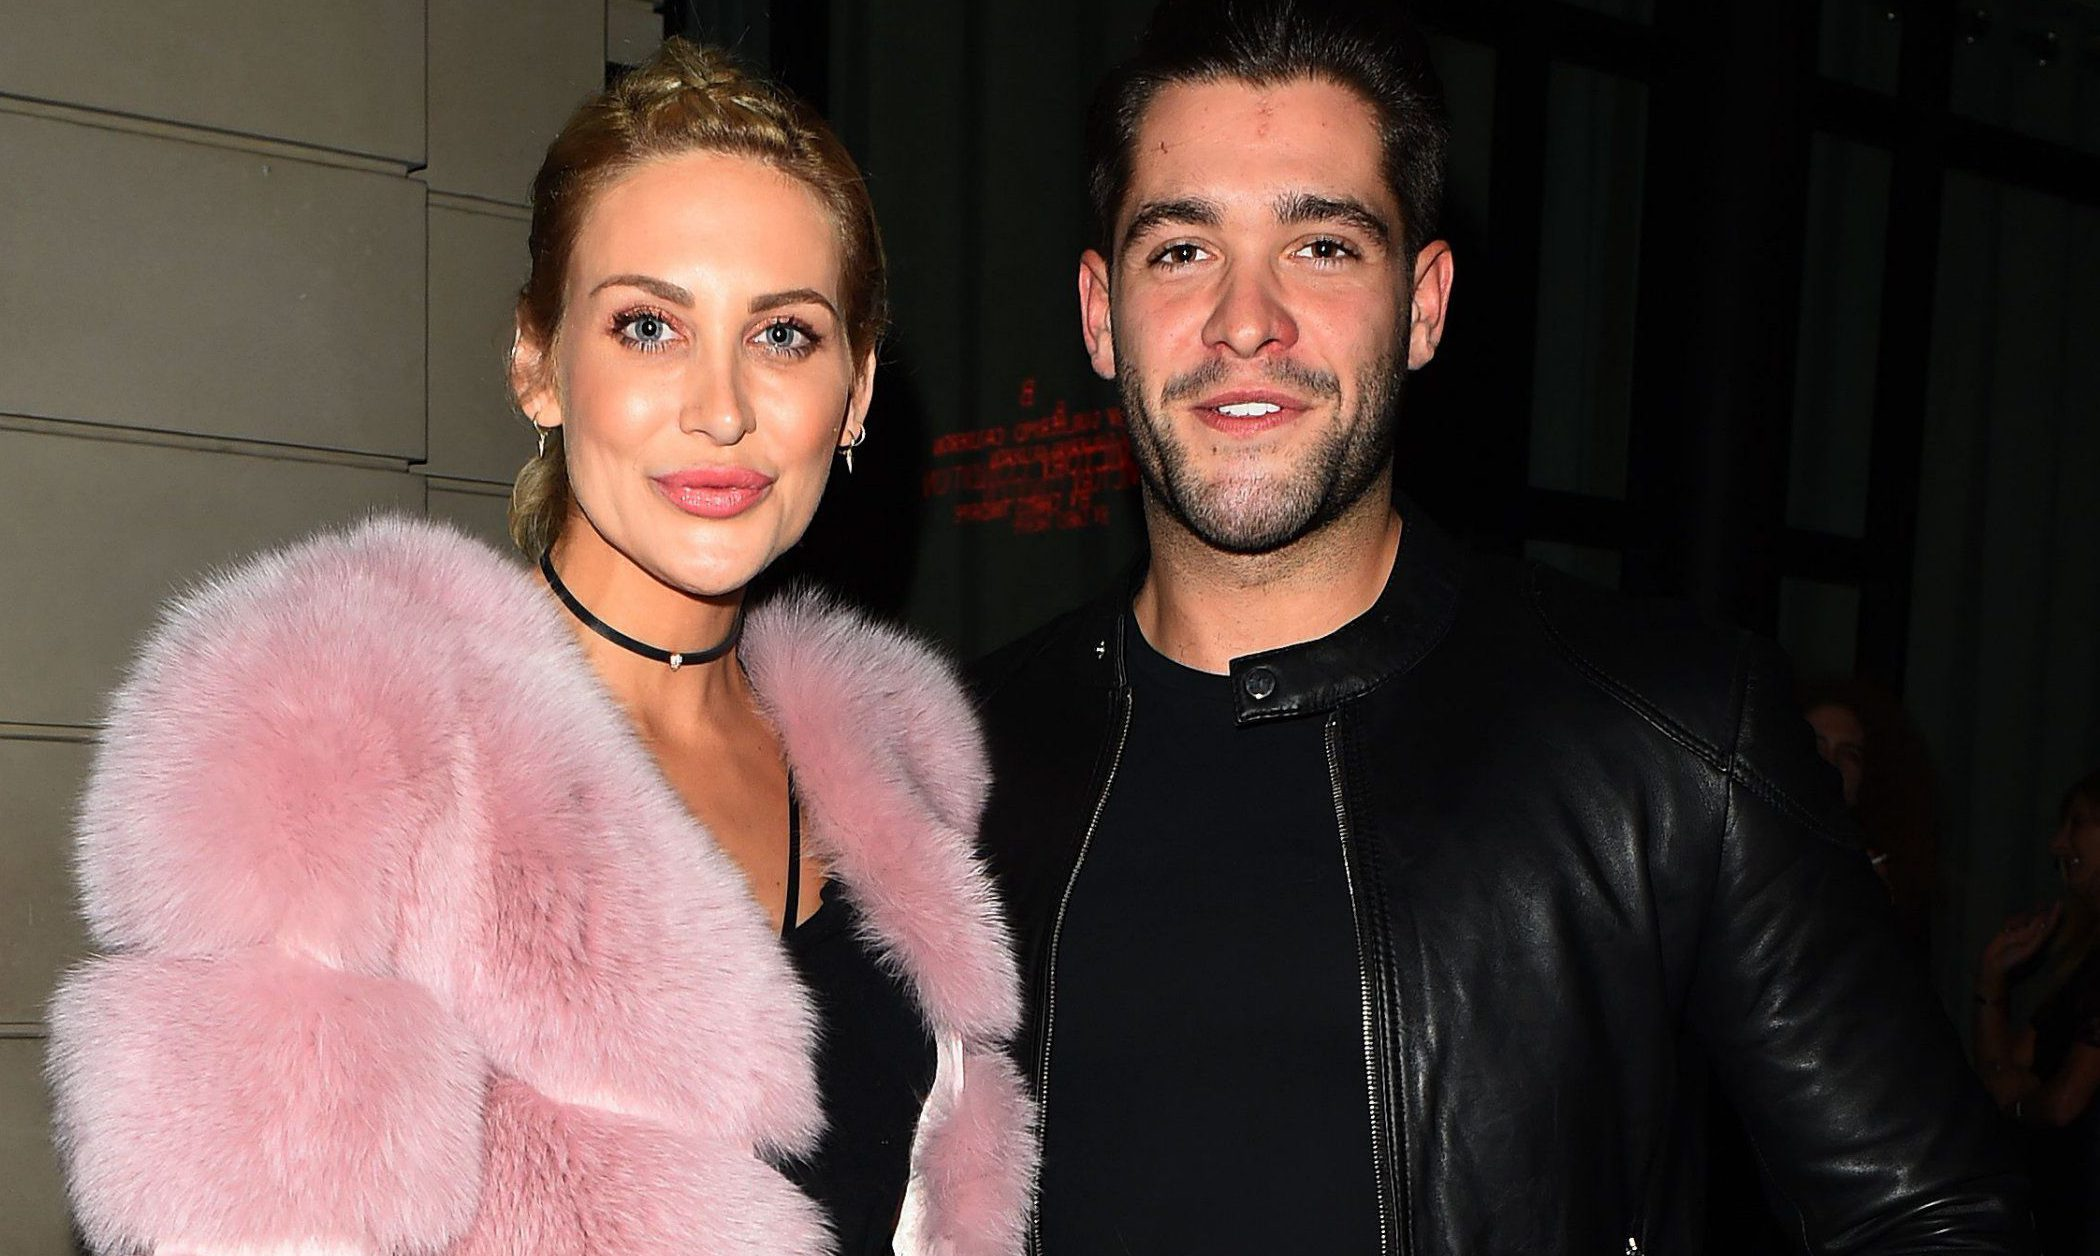 Jonny Mitchell speaks out as Stephanie Pratt accuses him of 'attacking' her and cheating